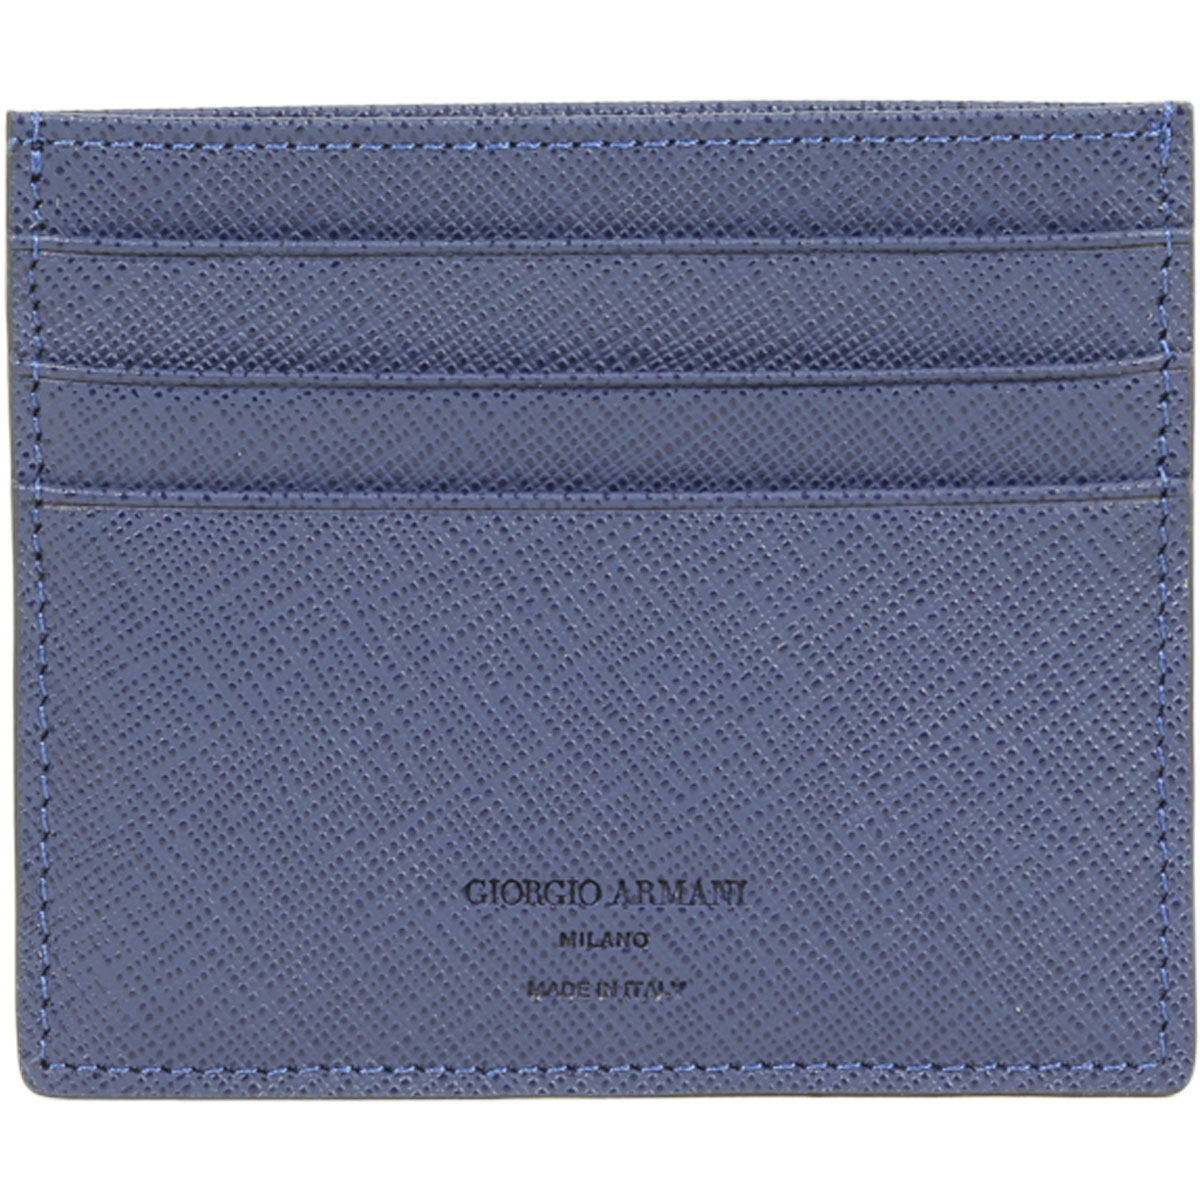 Giorgio Armani Men\'s Textured Genuine Leather Card Holder Wallet | eBay